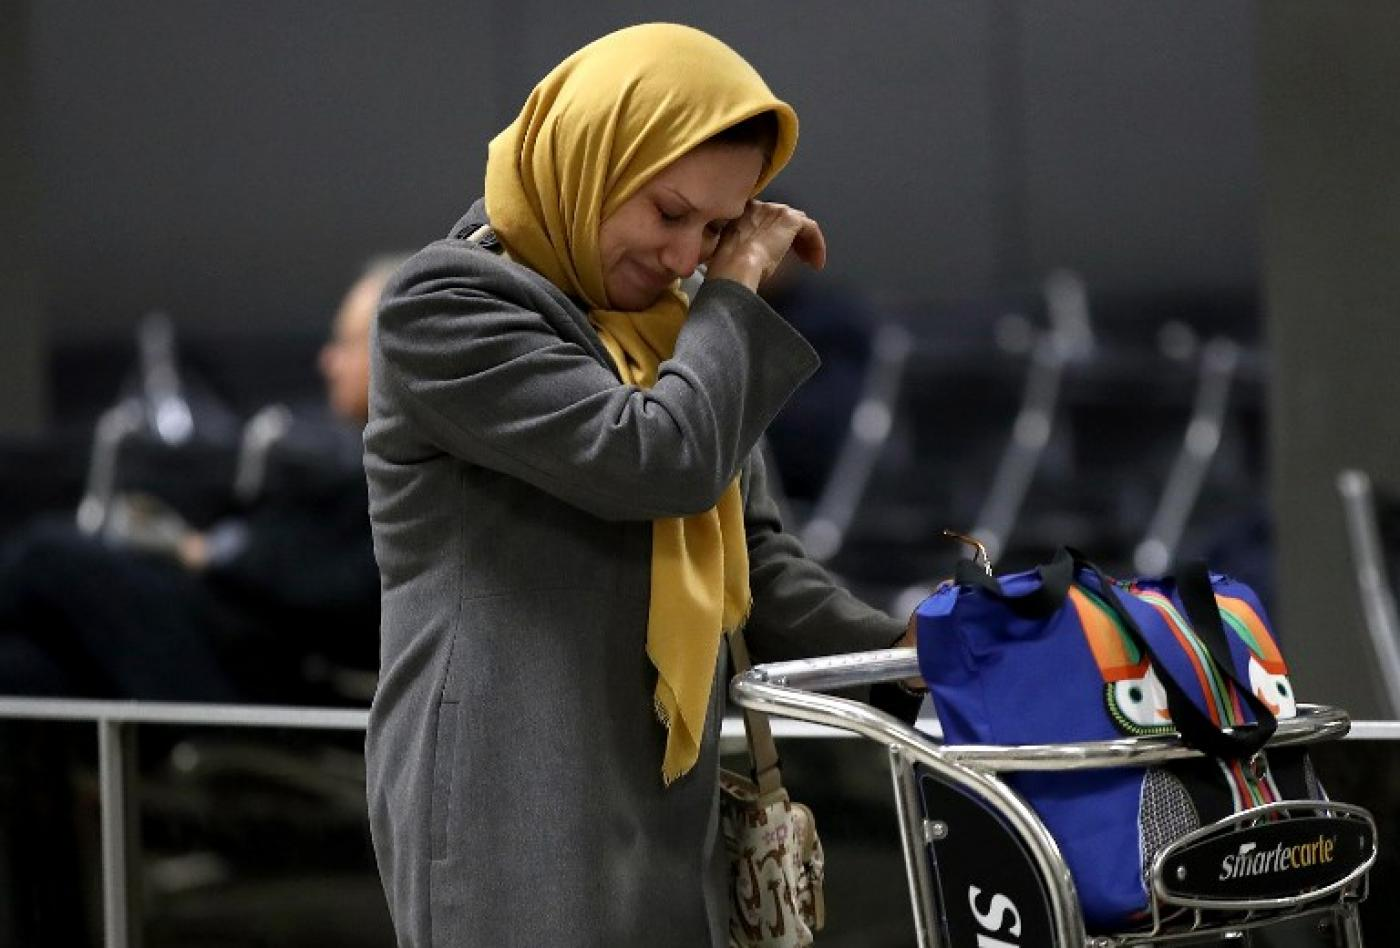 Muslim ban': Two years on, Trump's order still destroying lives